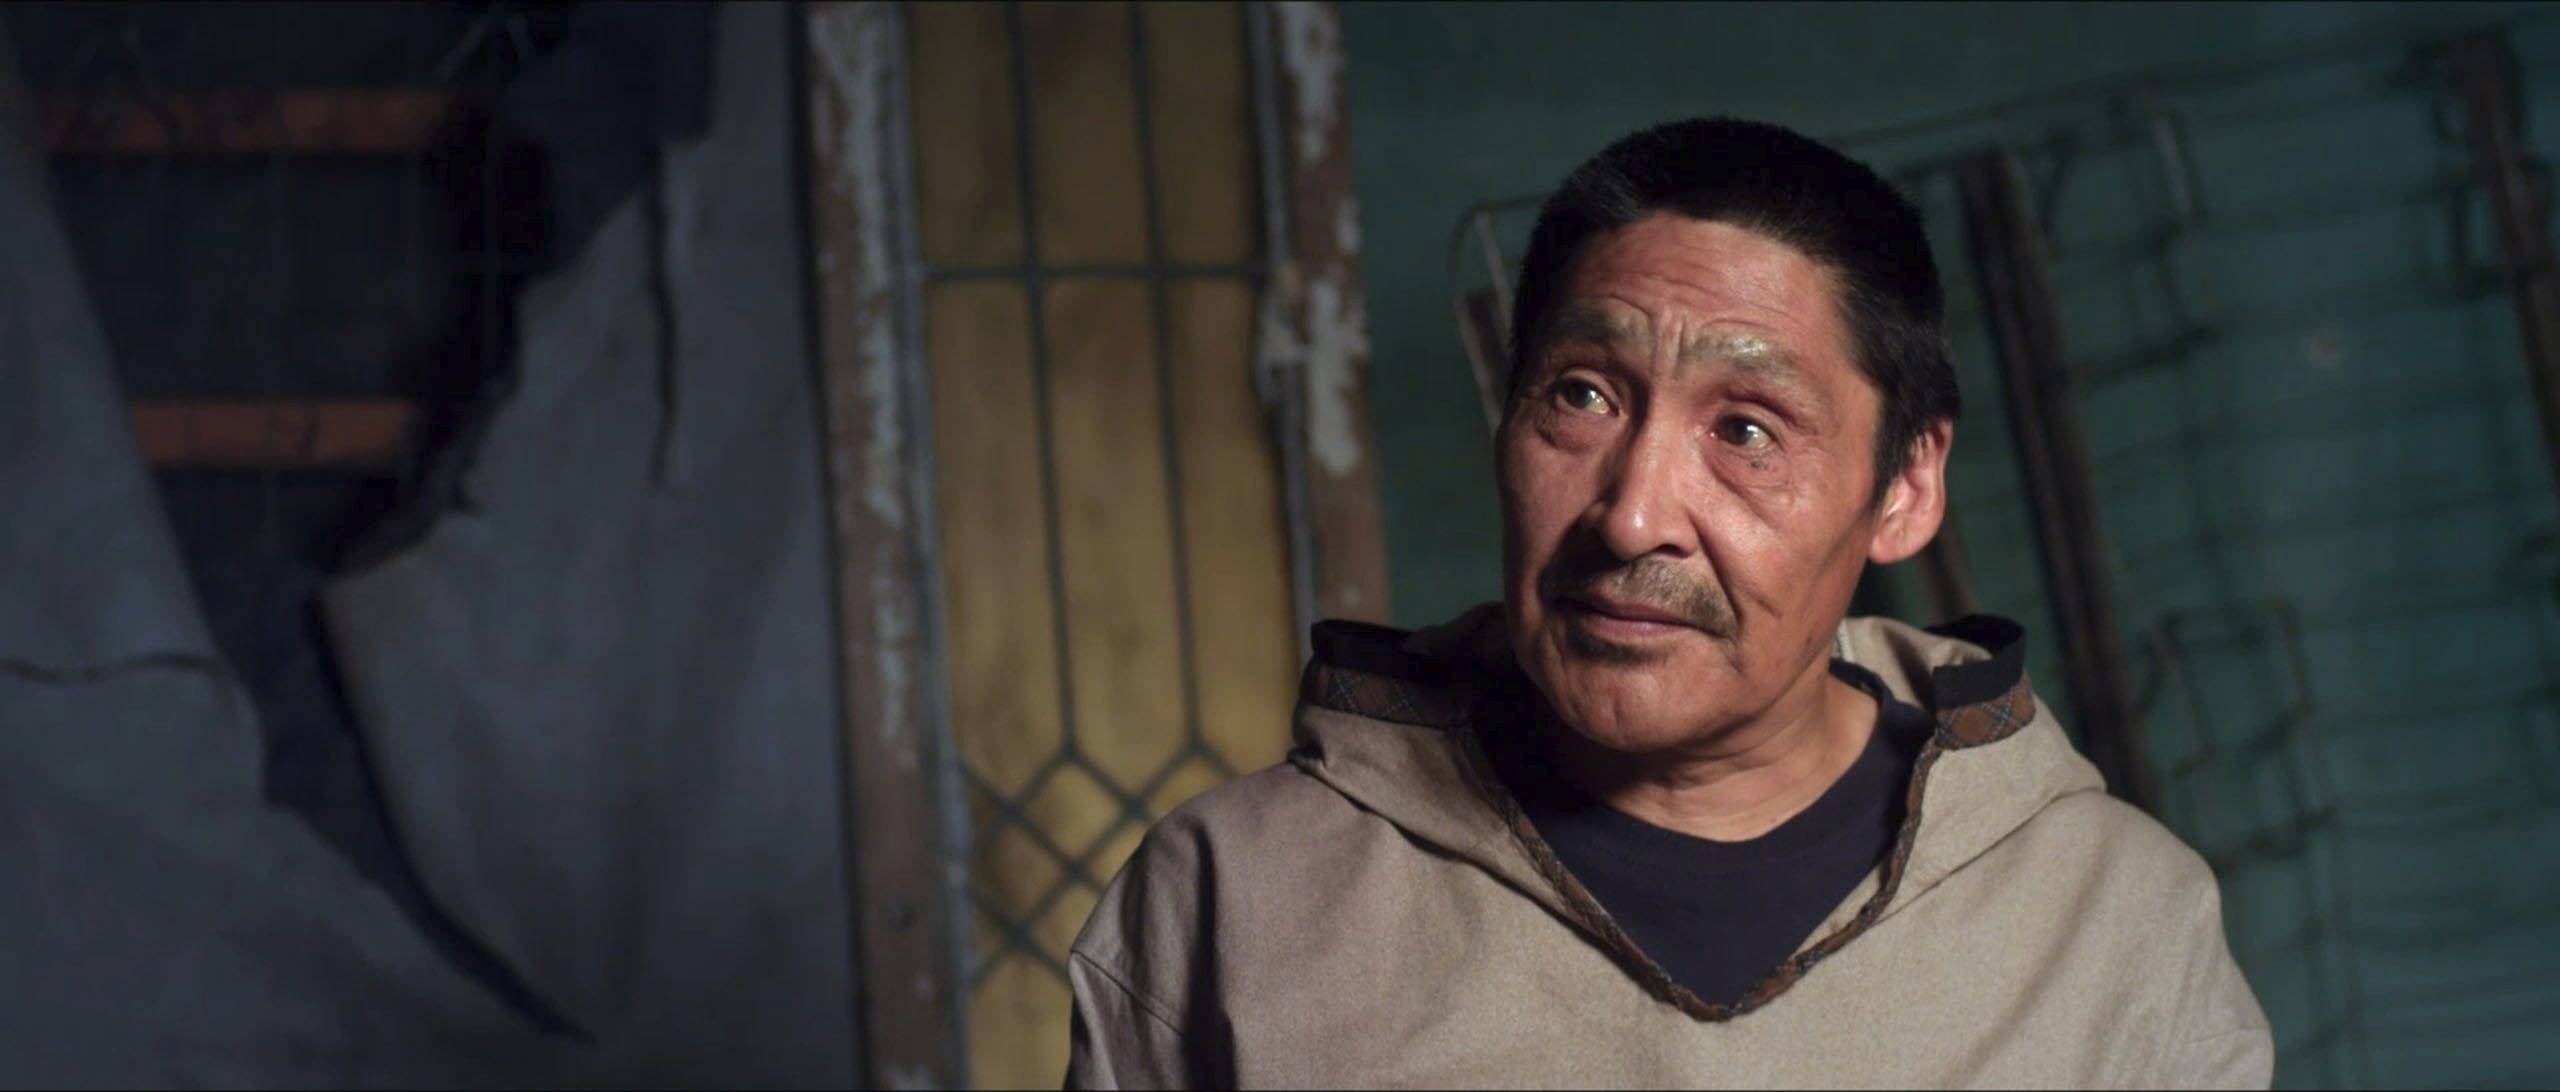 "Theo Ikummaq plays an Inuit in the well-meaning message movie ""Chloe & Theo."""